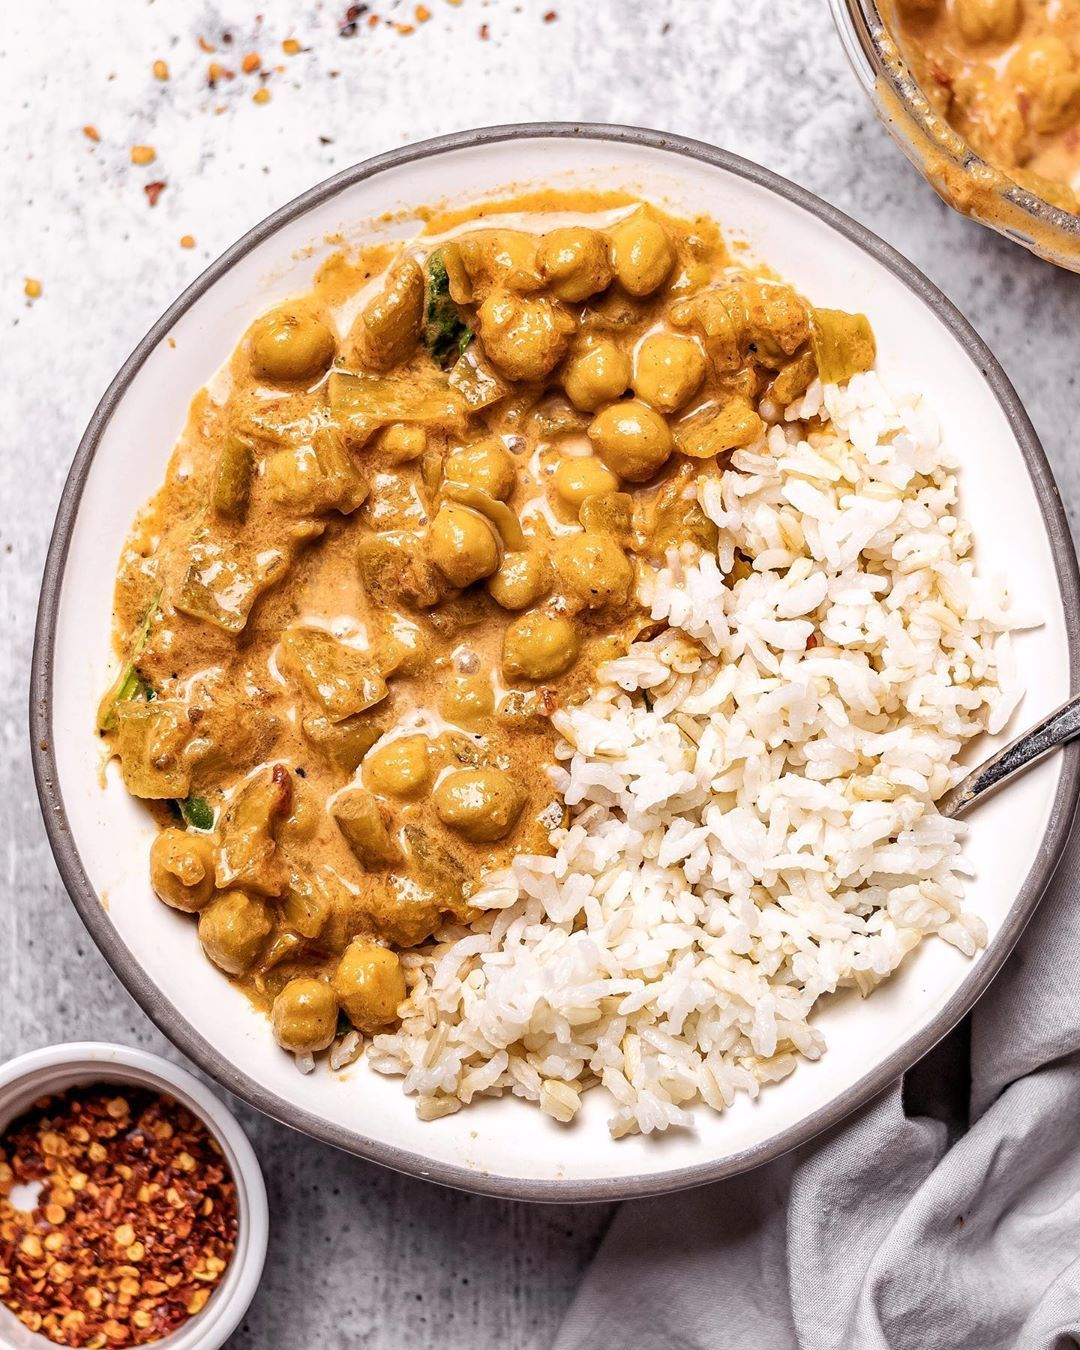 Creamy Butter Chickpeas The Best Vegan Food Good Old Vegan In 2020 Vegetarian Recipes Easy Vegan Recipes Plant Based Easy Baby Food Recipes